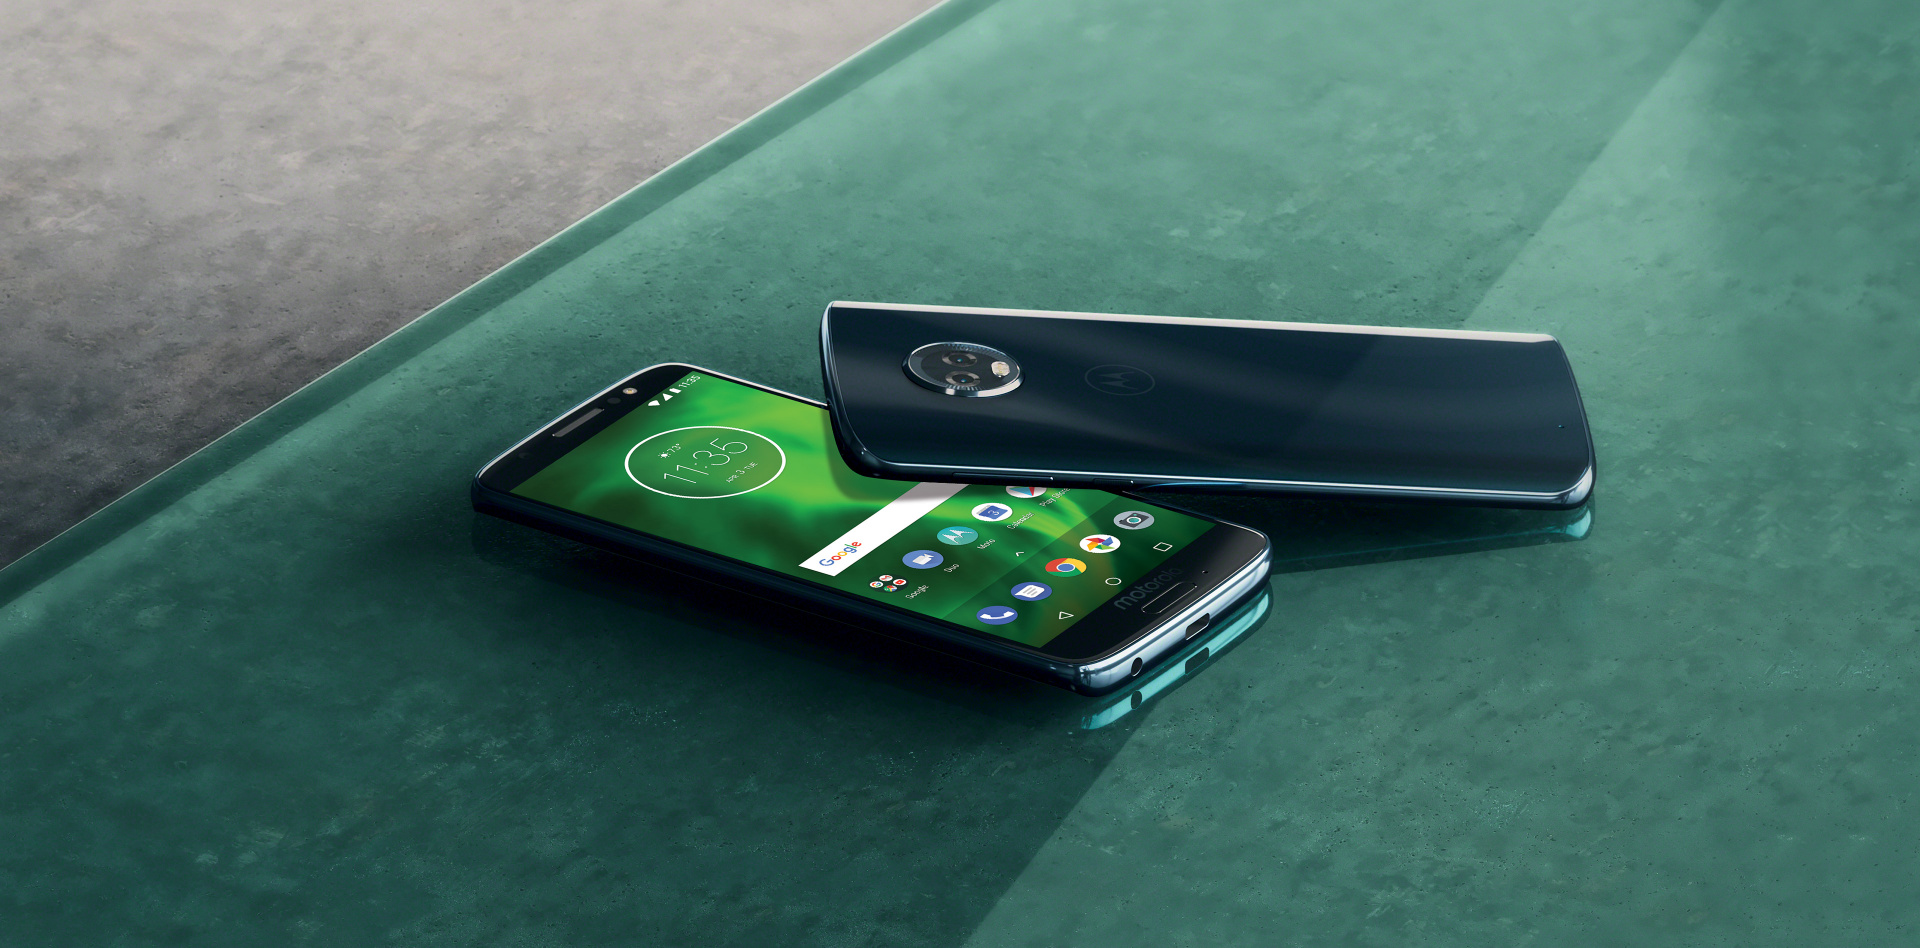 Moto G6 y G6 Play se lanzan en la India 1